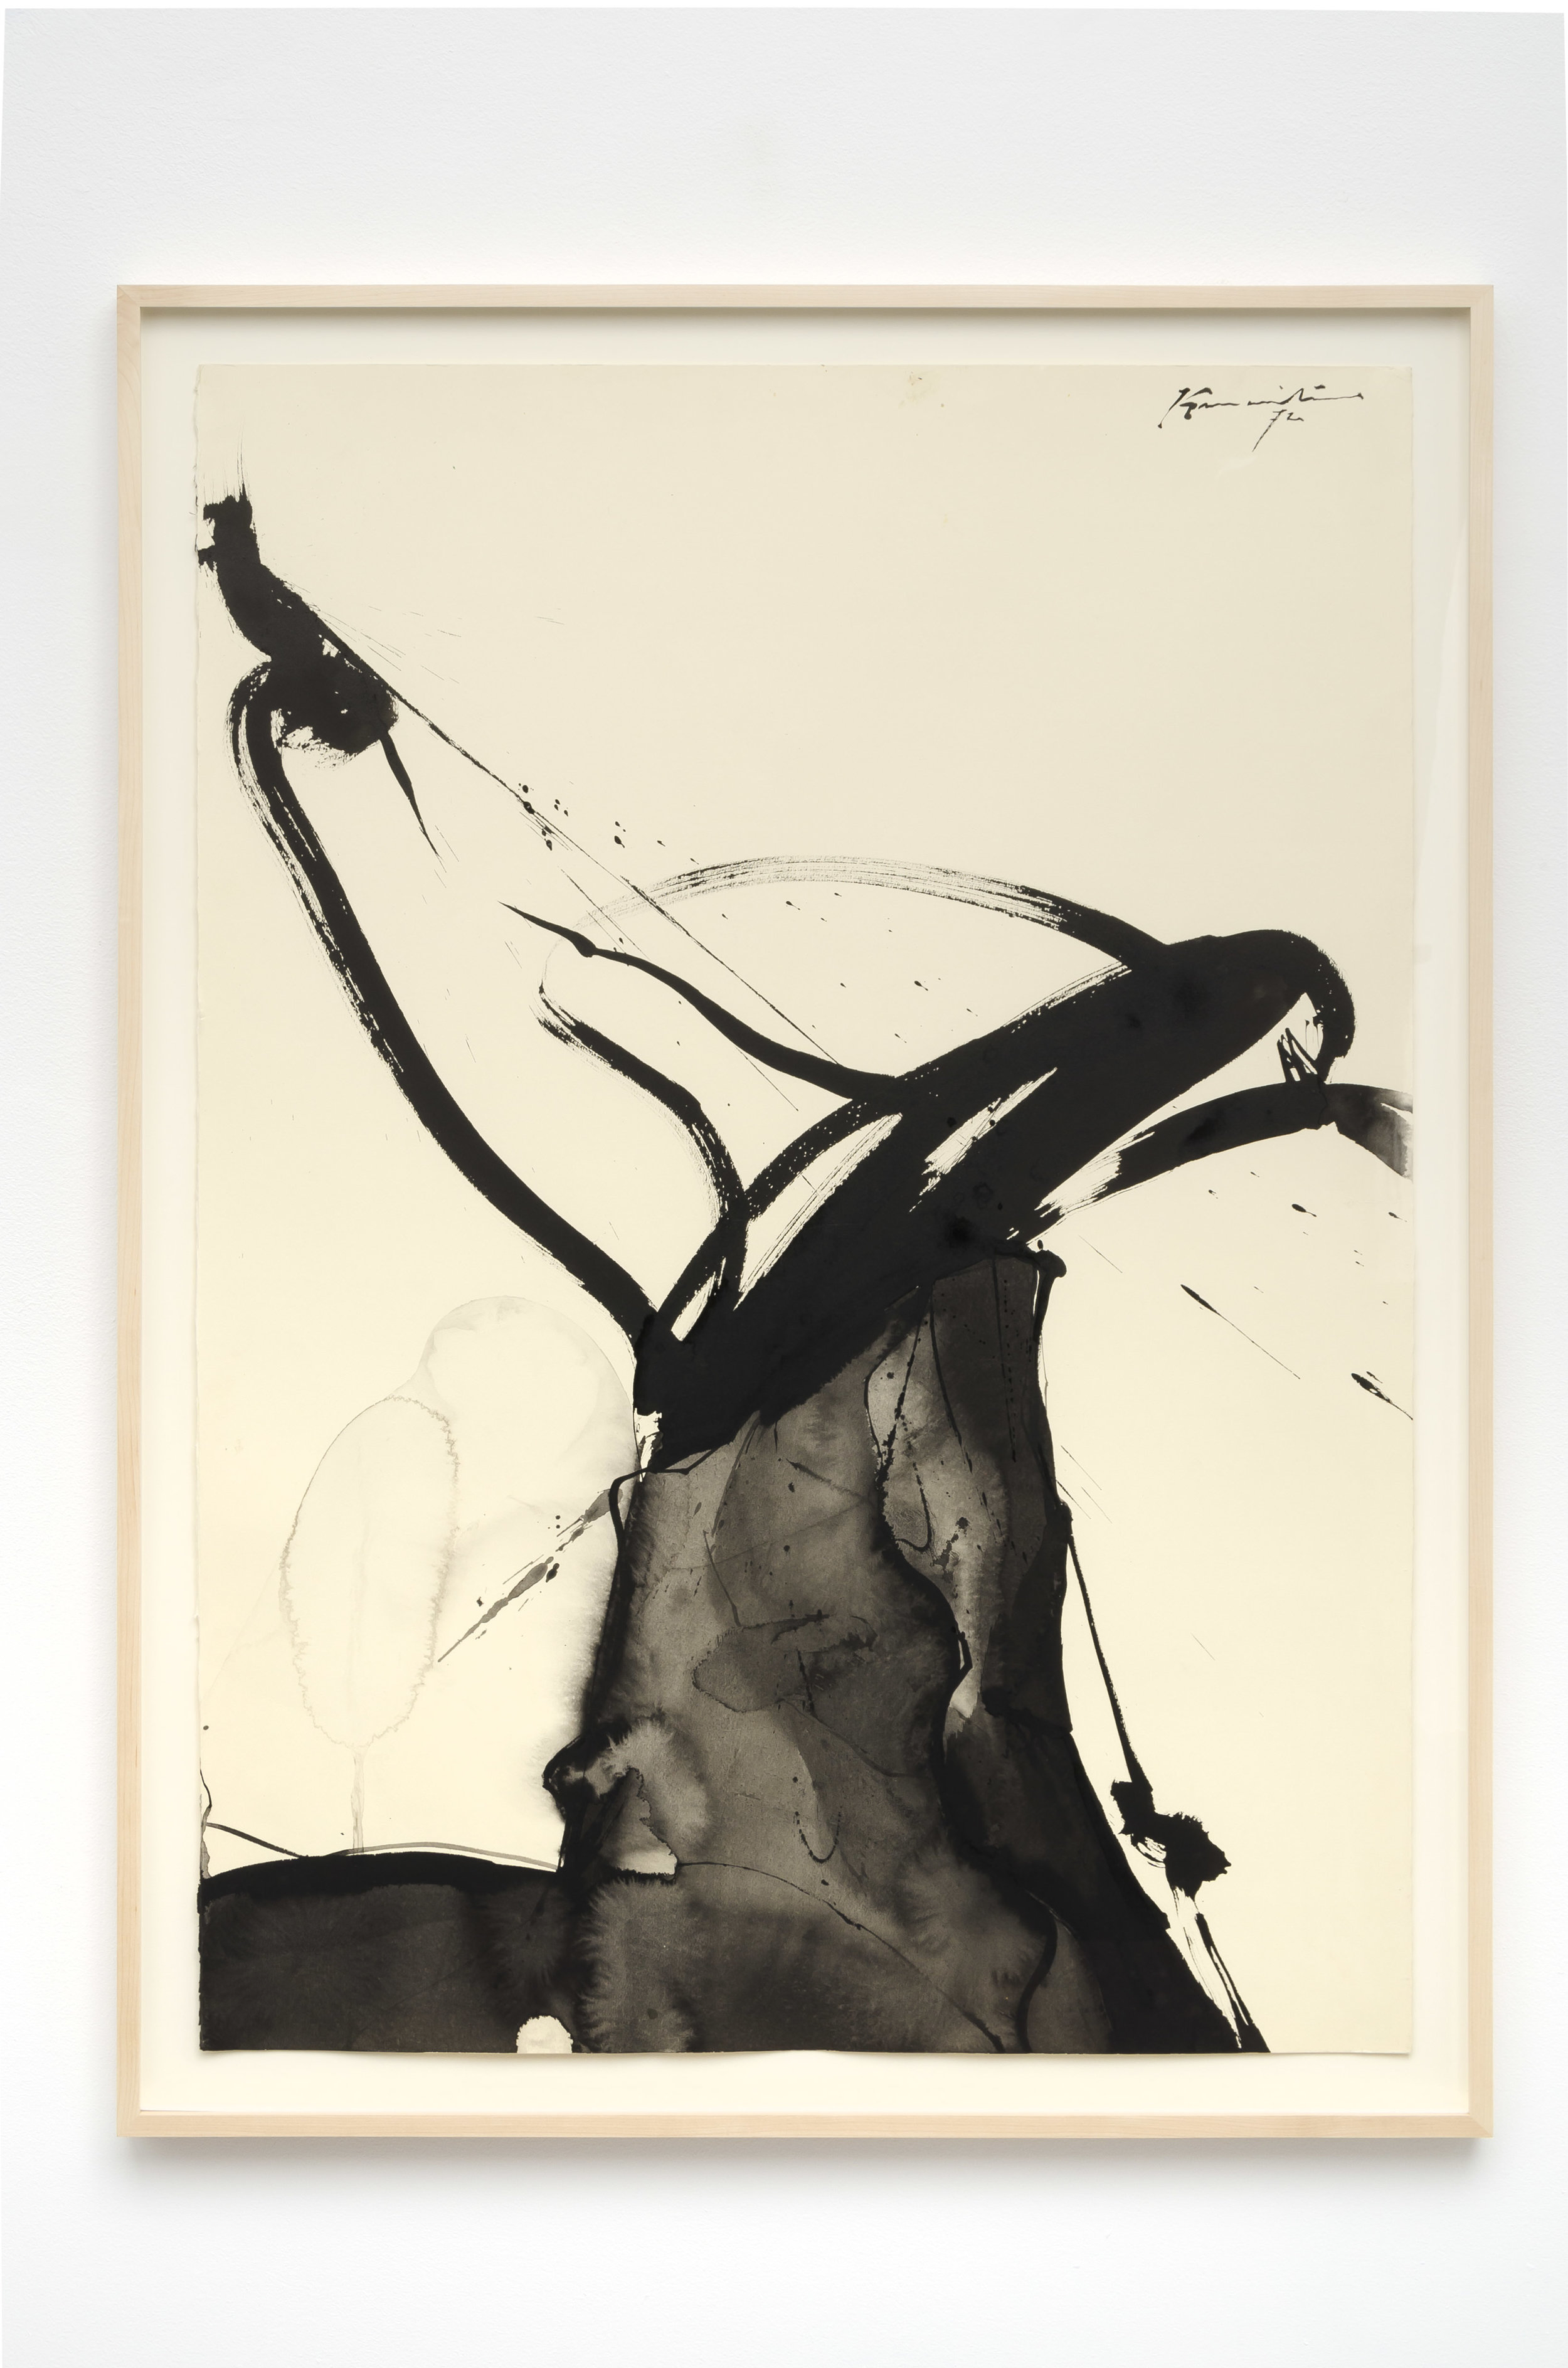 Untitled   1972  sumi ink on paper  43 x 31 inches, 109.2 x 78.7 centimeters